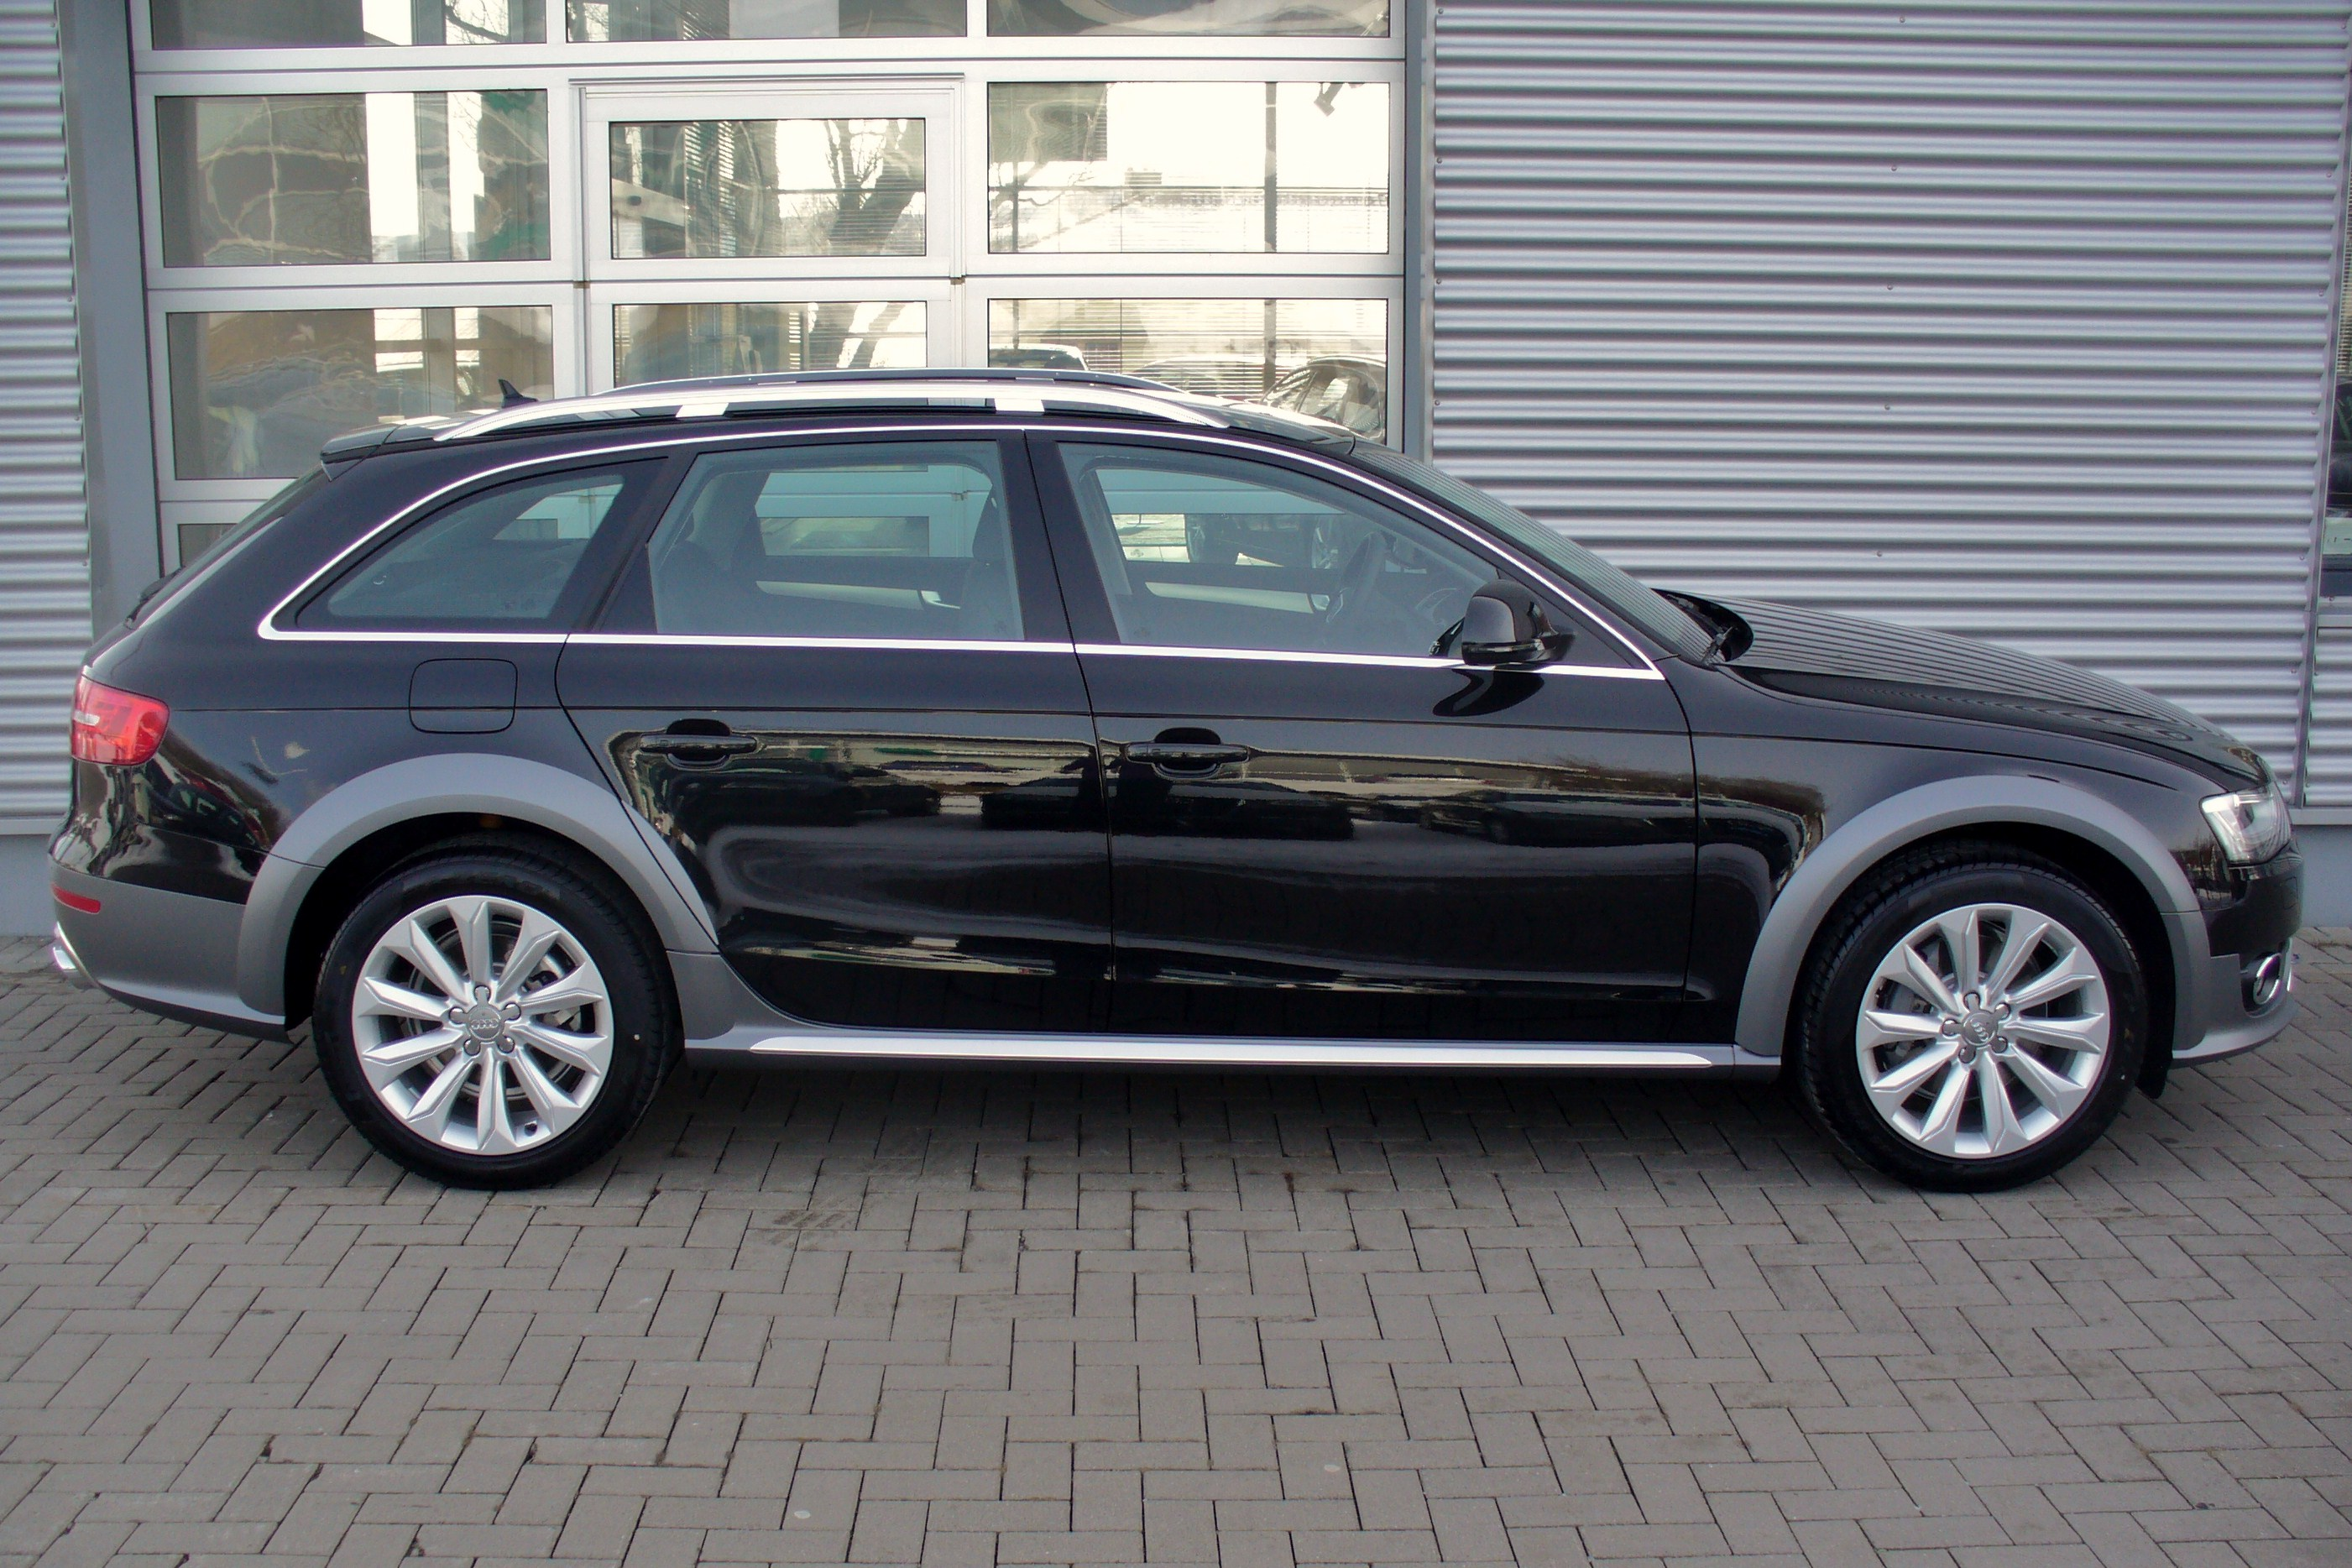 2011 Audi A4 allroad (b8) – pictures, information and specs - Auto Matte Grey Audi A on gunmetal audi a4, gray audi a4, matte grey audi s8, dark grey audi a4, matte orange audi a4, matte silver audi a4, matte blue audi a4, white audi a4, black audi a4, light blue audi a4, maroon audi a4, purple audi a4, tan audi a4, matte grey audi q5, carbon audi a4, matte grey audi r8, matte grey audi rs5, matte charcoal audi a4, matte grey audi a8, matte grey audi a7,